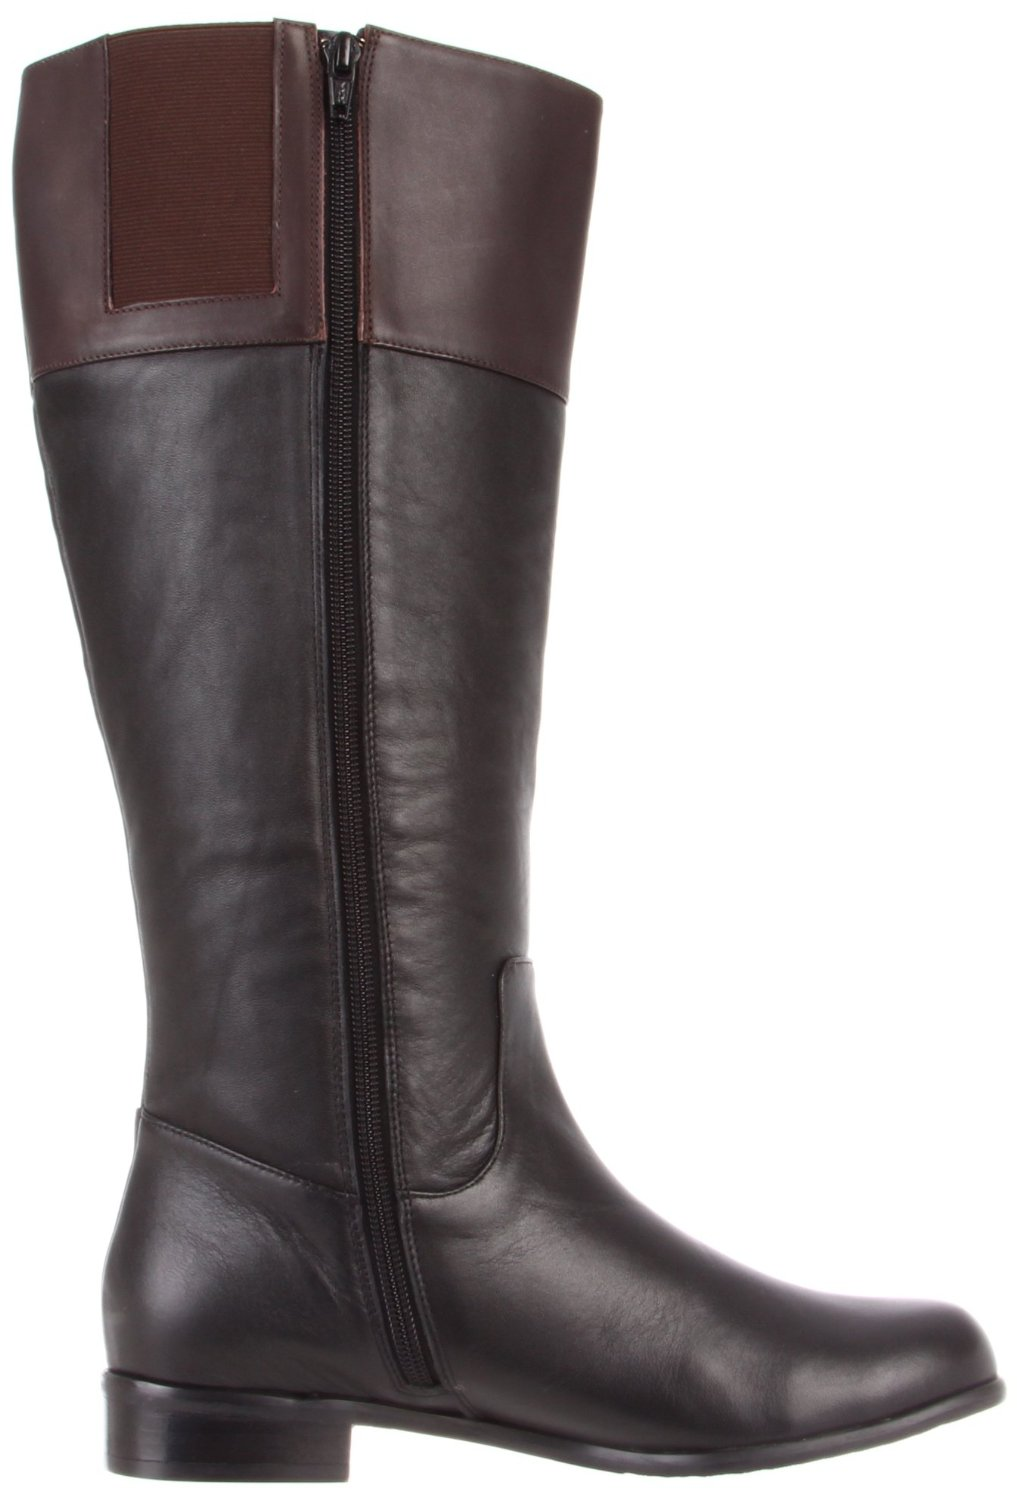 Free shipping BOTH ways on black leather wide calf boots, from our vast selection of styles. Fast delivery, and 24/7/ real-person service with a smile. Click or call